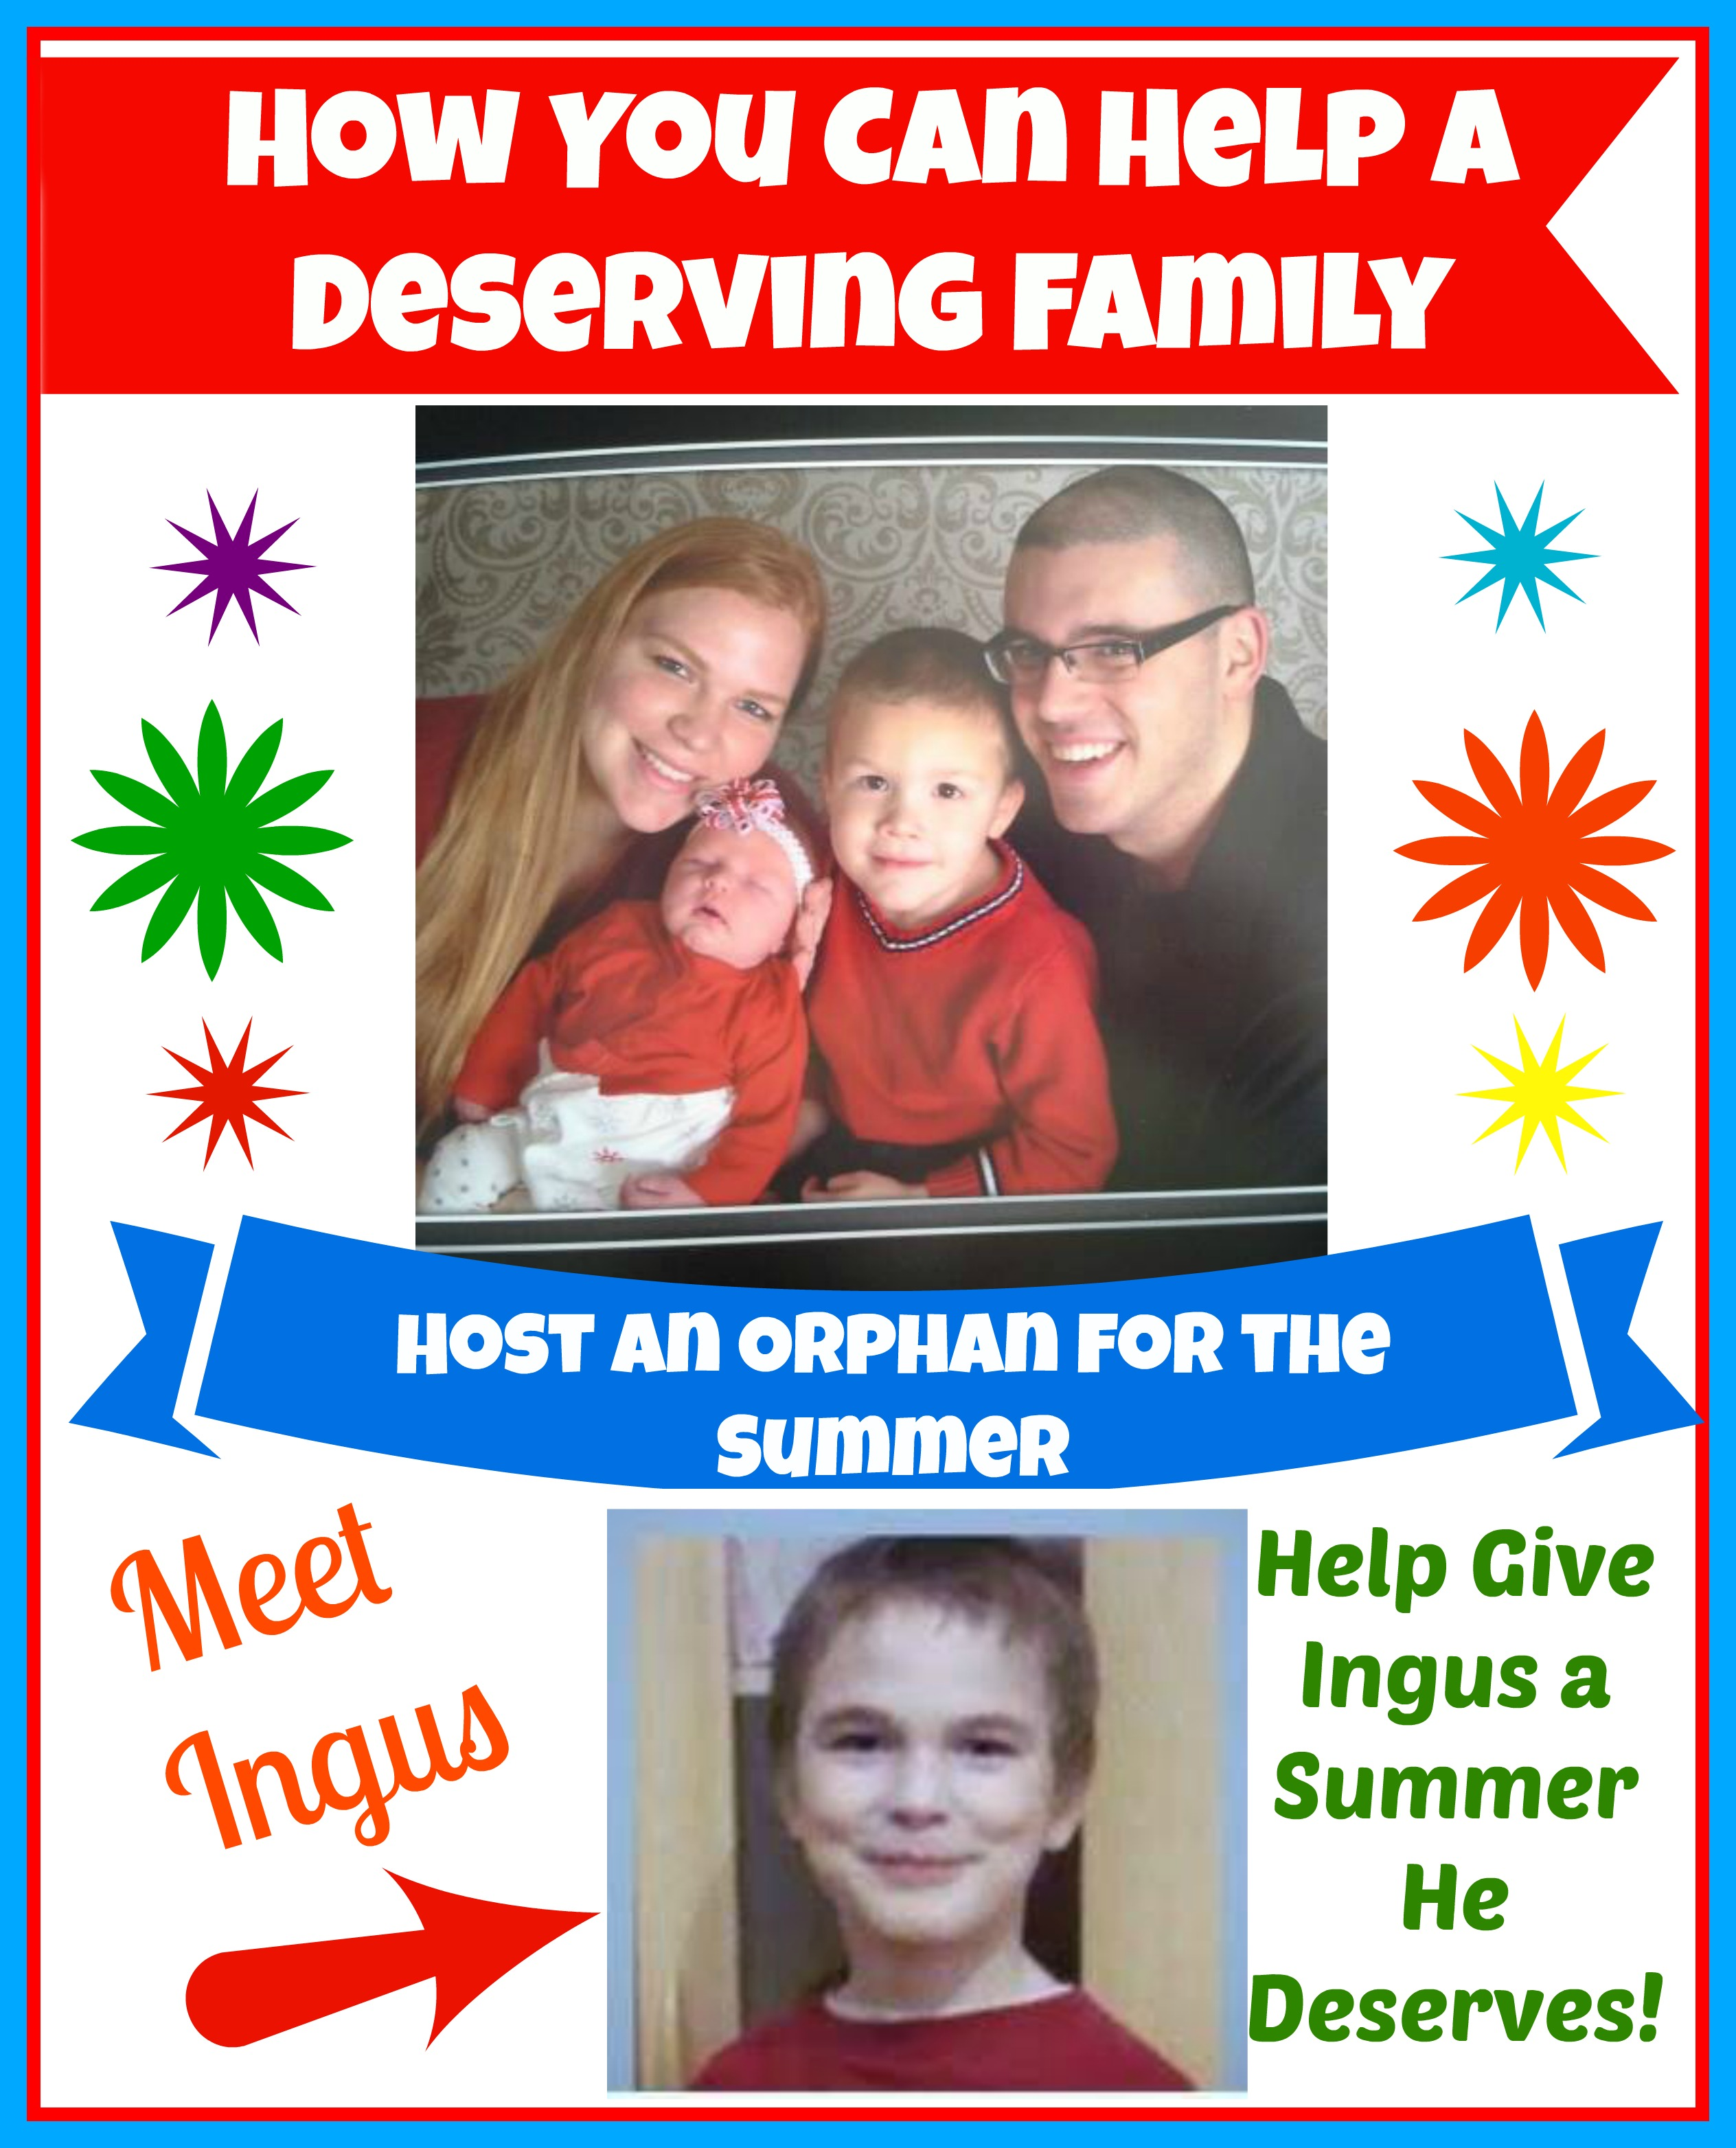 How You Can Help a Deserving Family Host an Orphan for the Summer